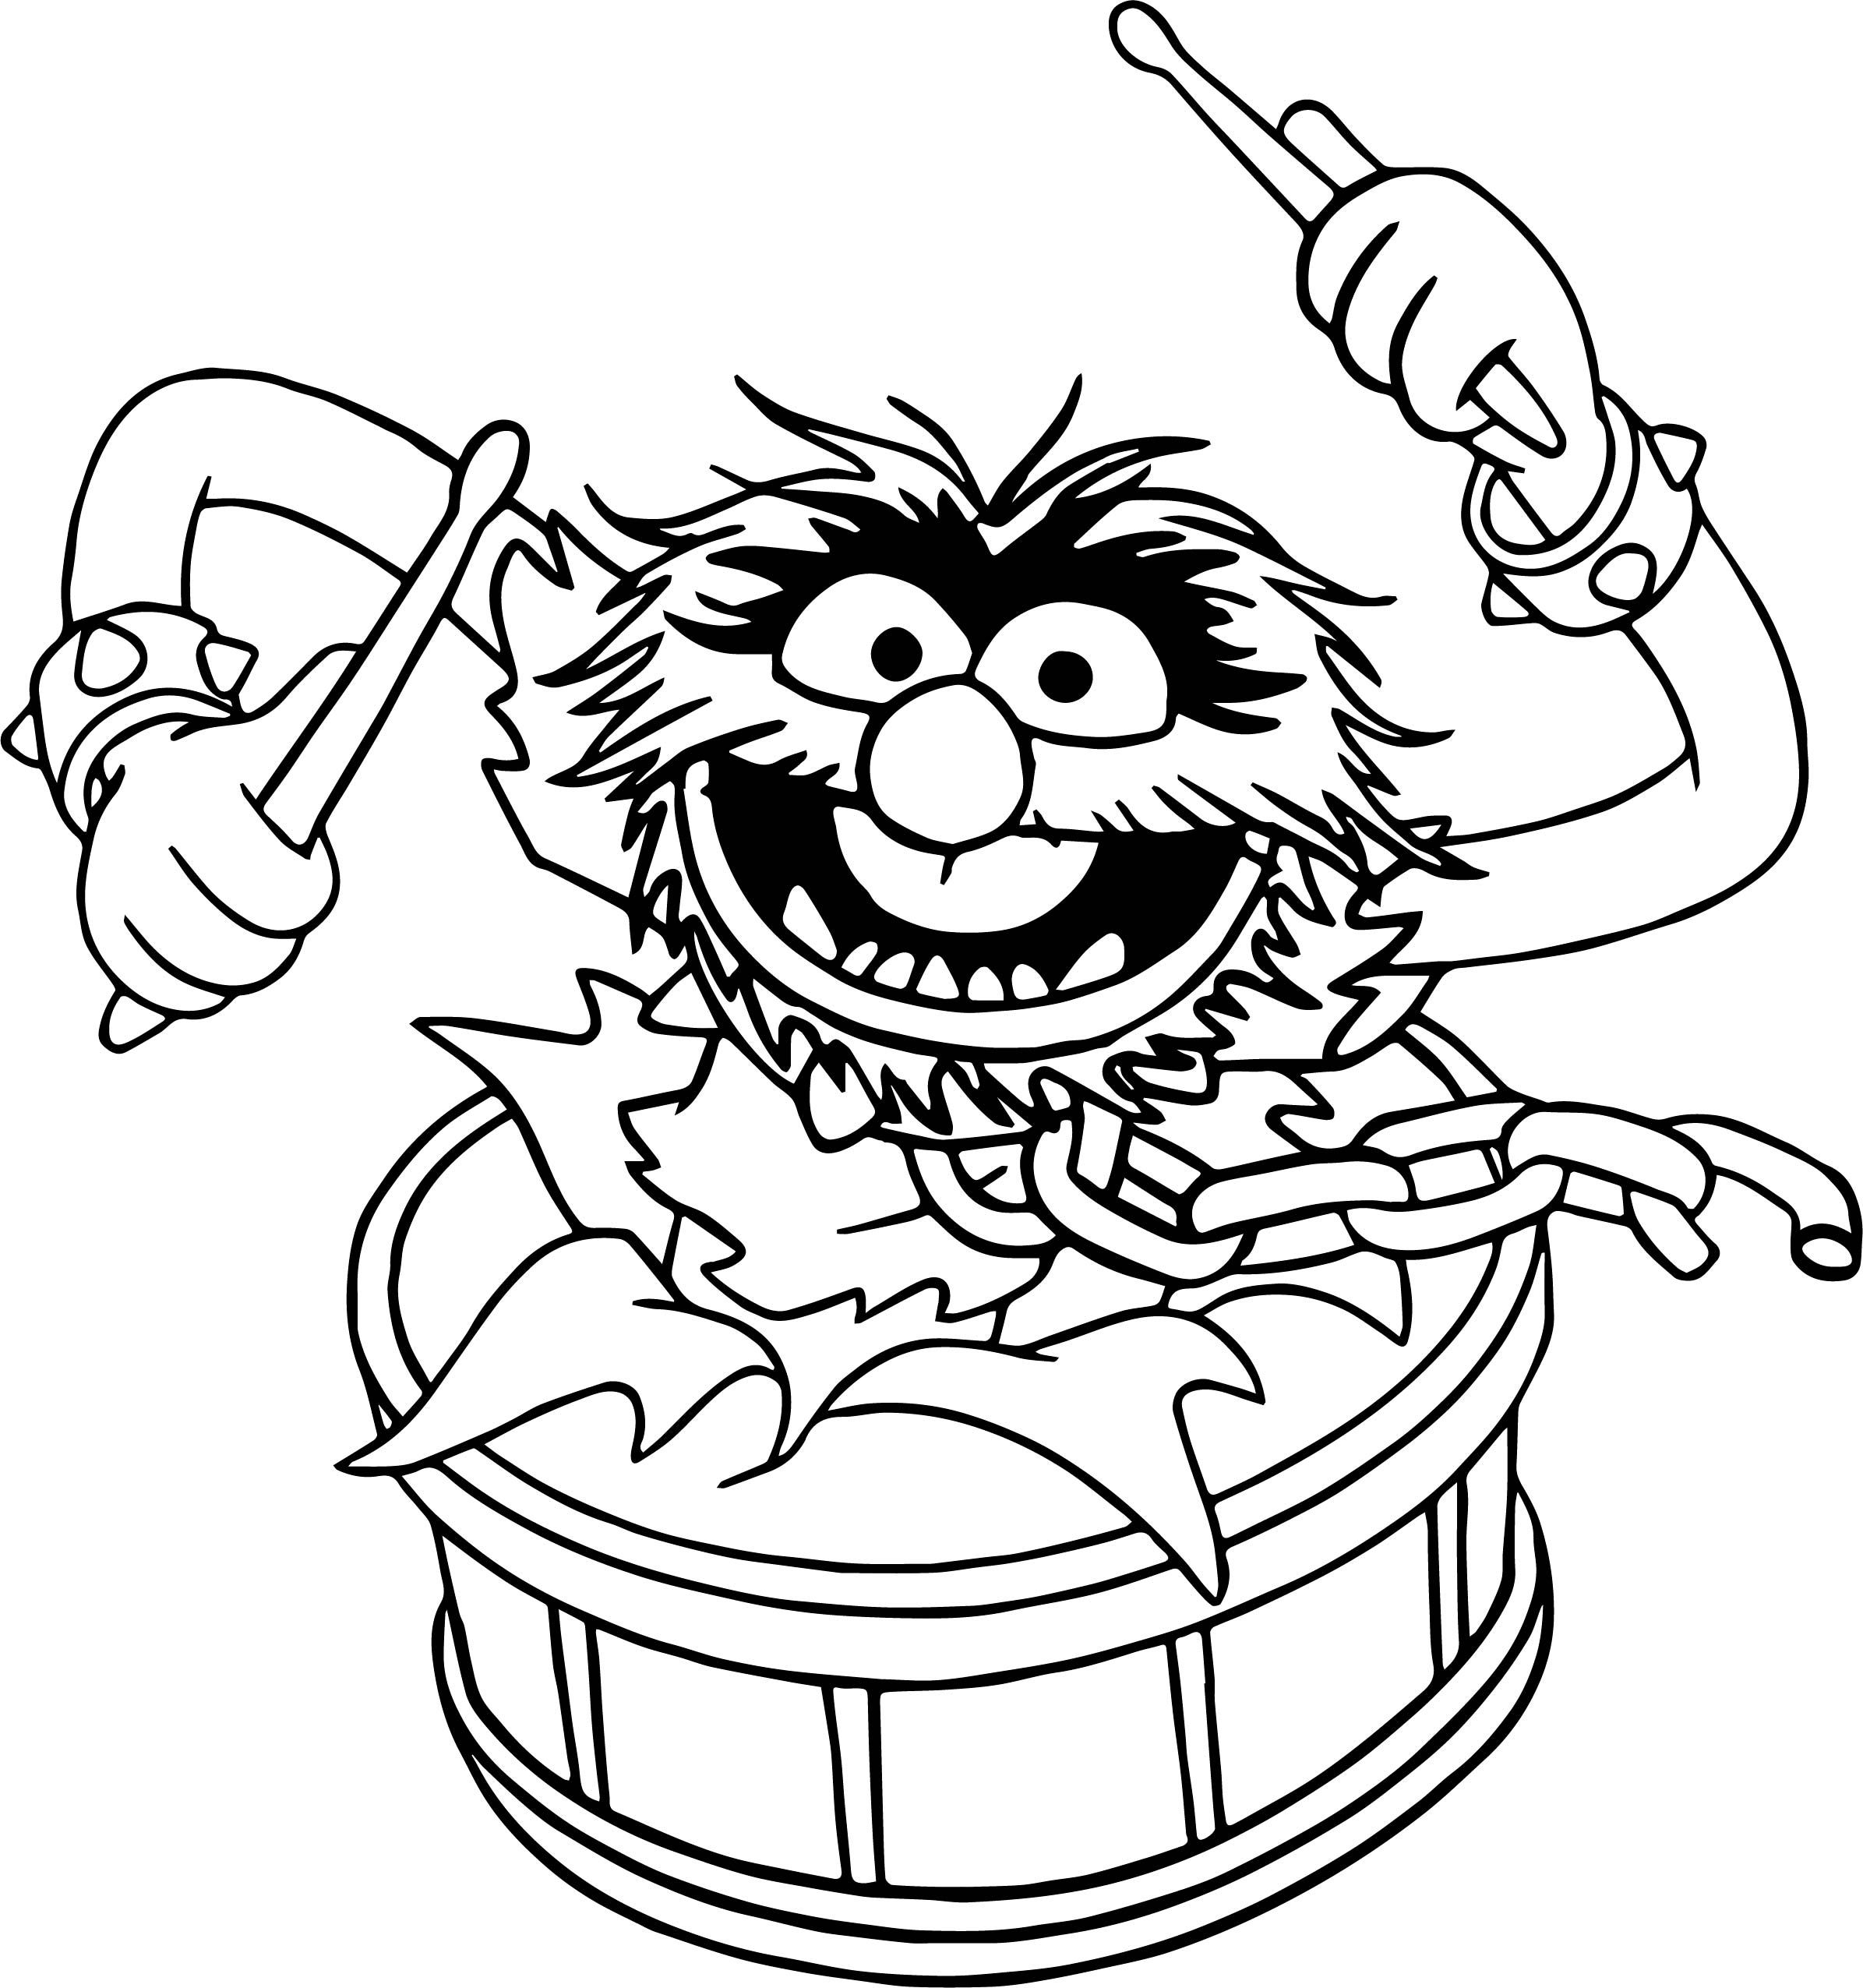 The Muppets Animal Song Coloring Pages Muppets Animal Muppet